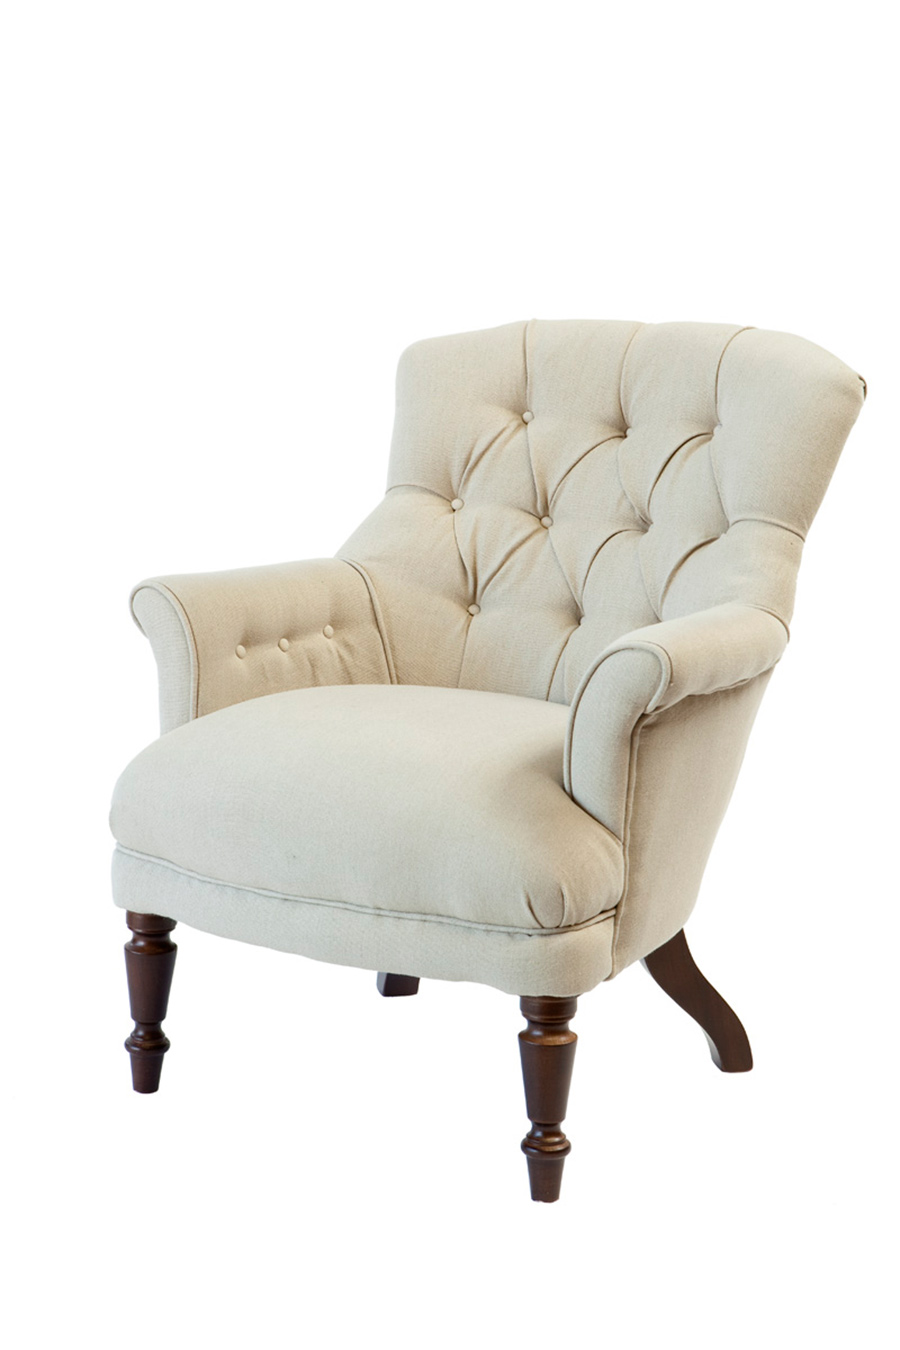 Occasional Chairs | Pottery Barn Leather Chair | Slipper Chairs Under $100